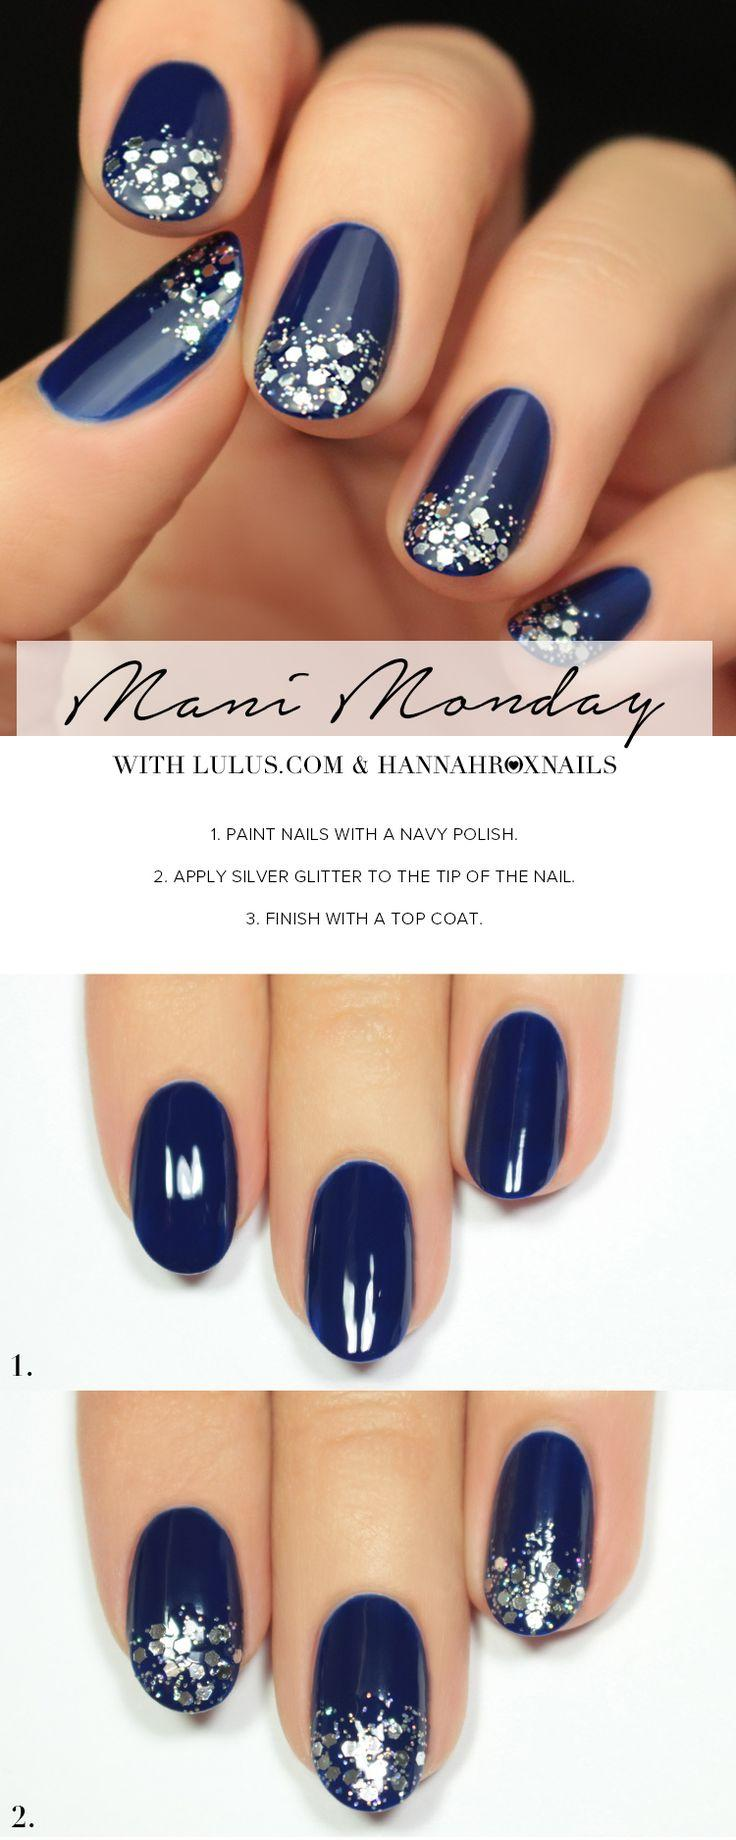 Hochzeit - Mani Monday: Navy Blue And Silver Glitter Nail Tutorial (Lulus.com Fashion Blog)